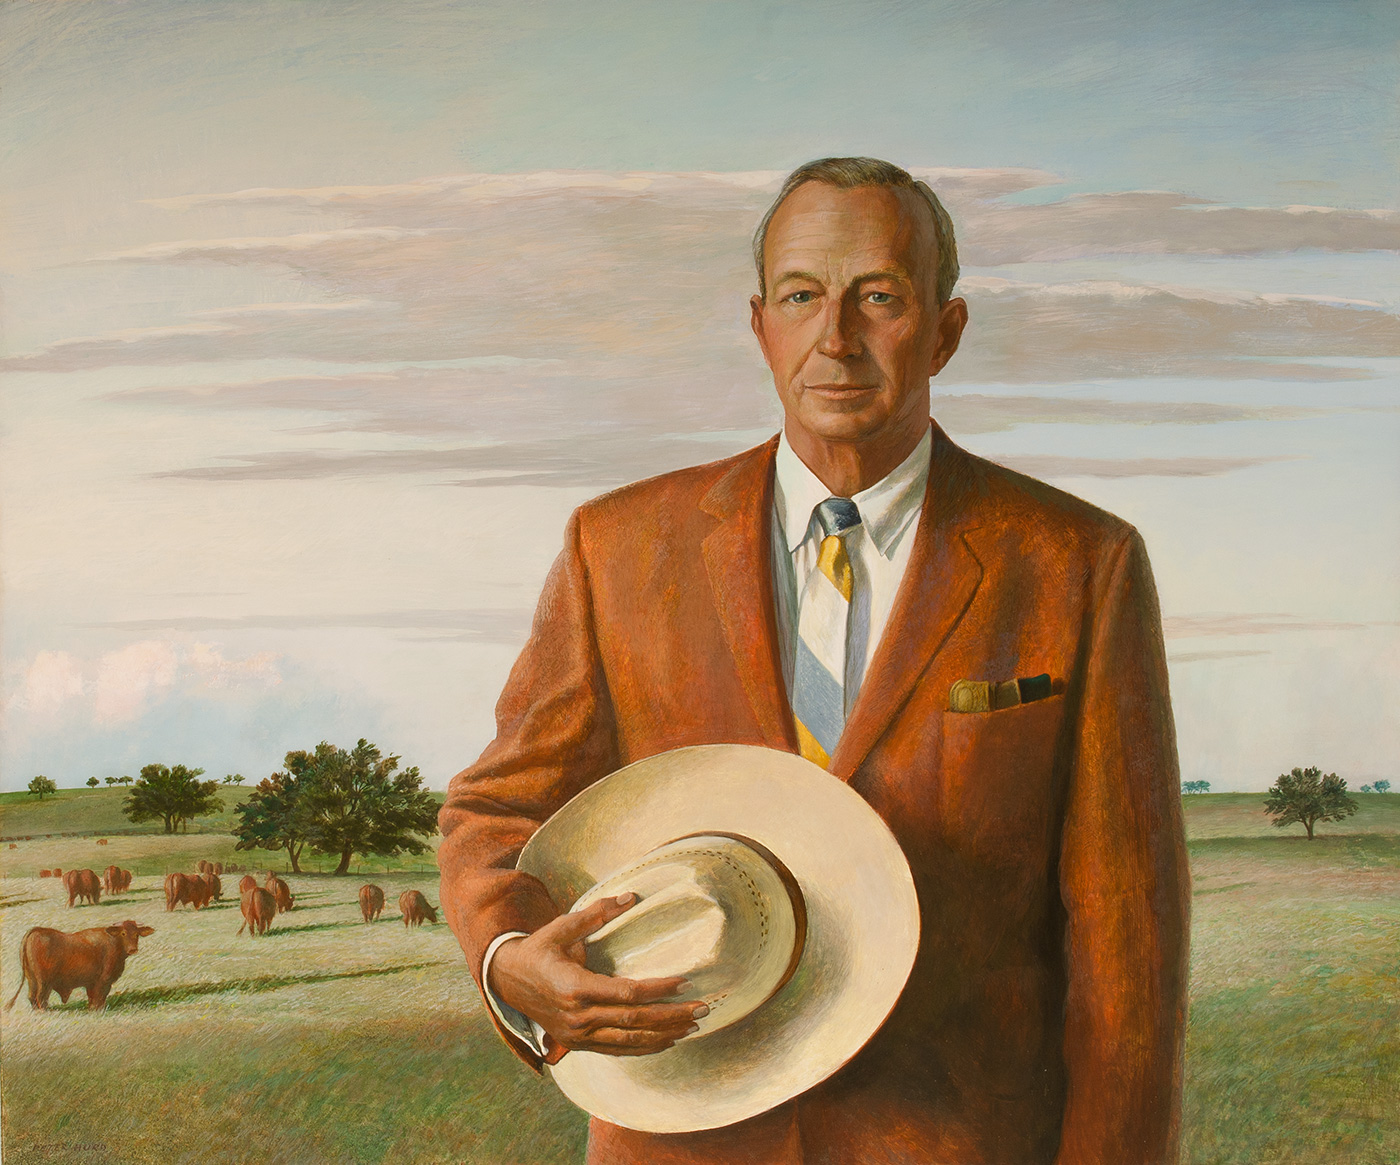 A half-length portrait of a man in a suit, holding a cowboy hat.